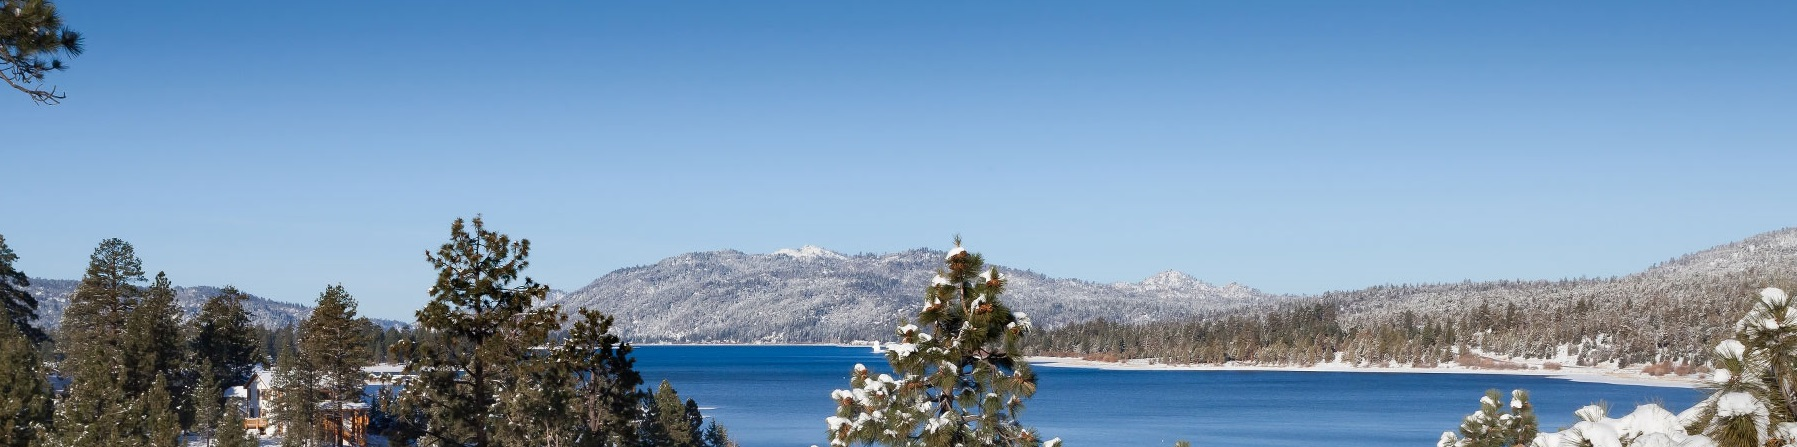 best bay rentals pet california bear cabins big s summit mountain friendly snow lake boulder house